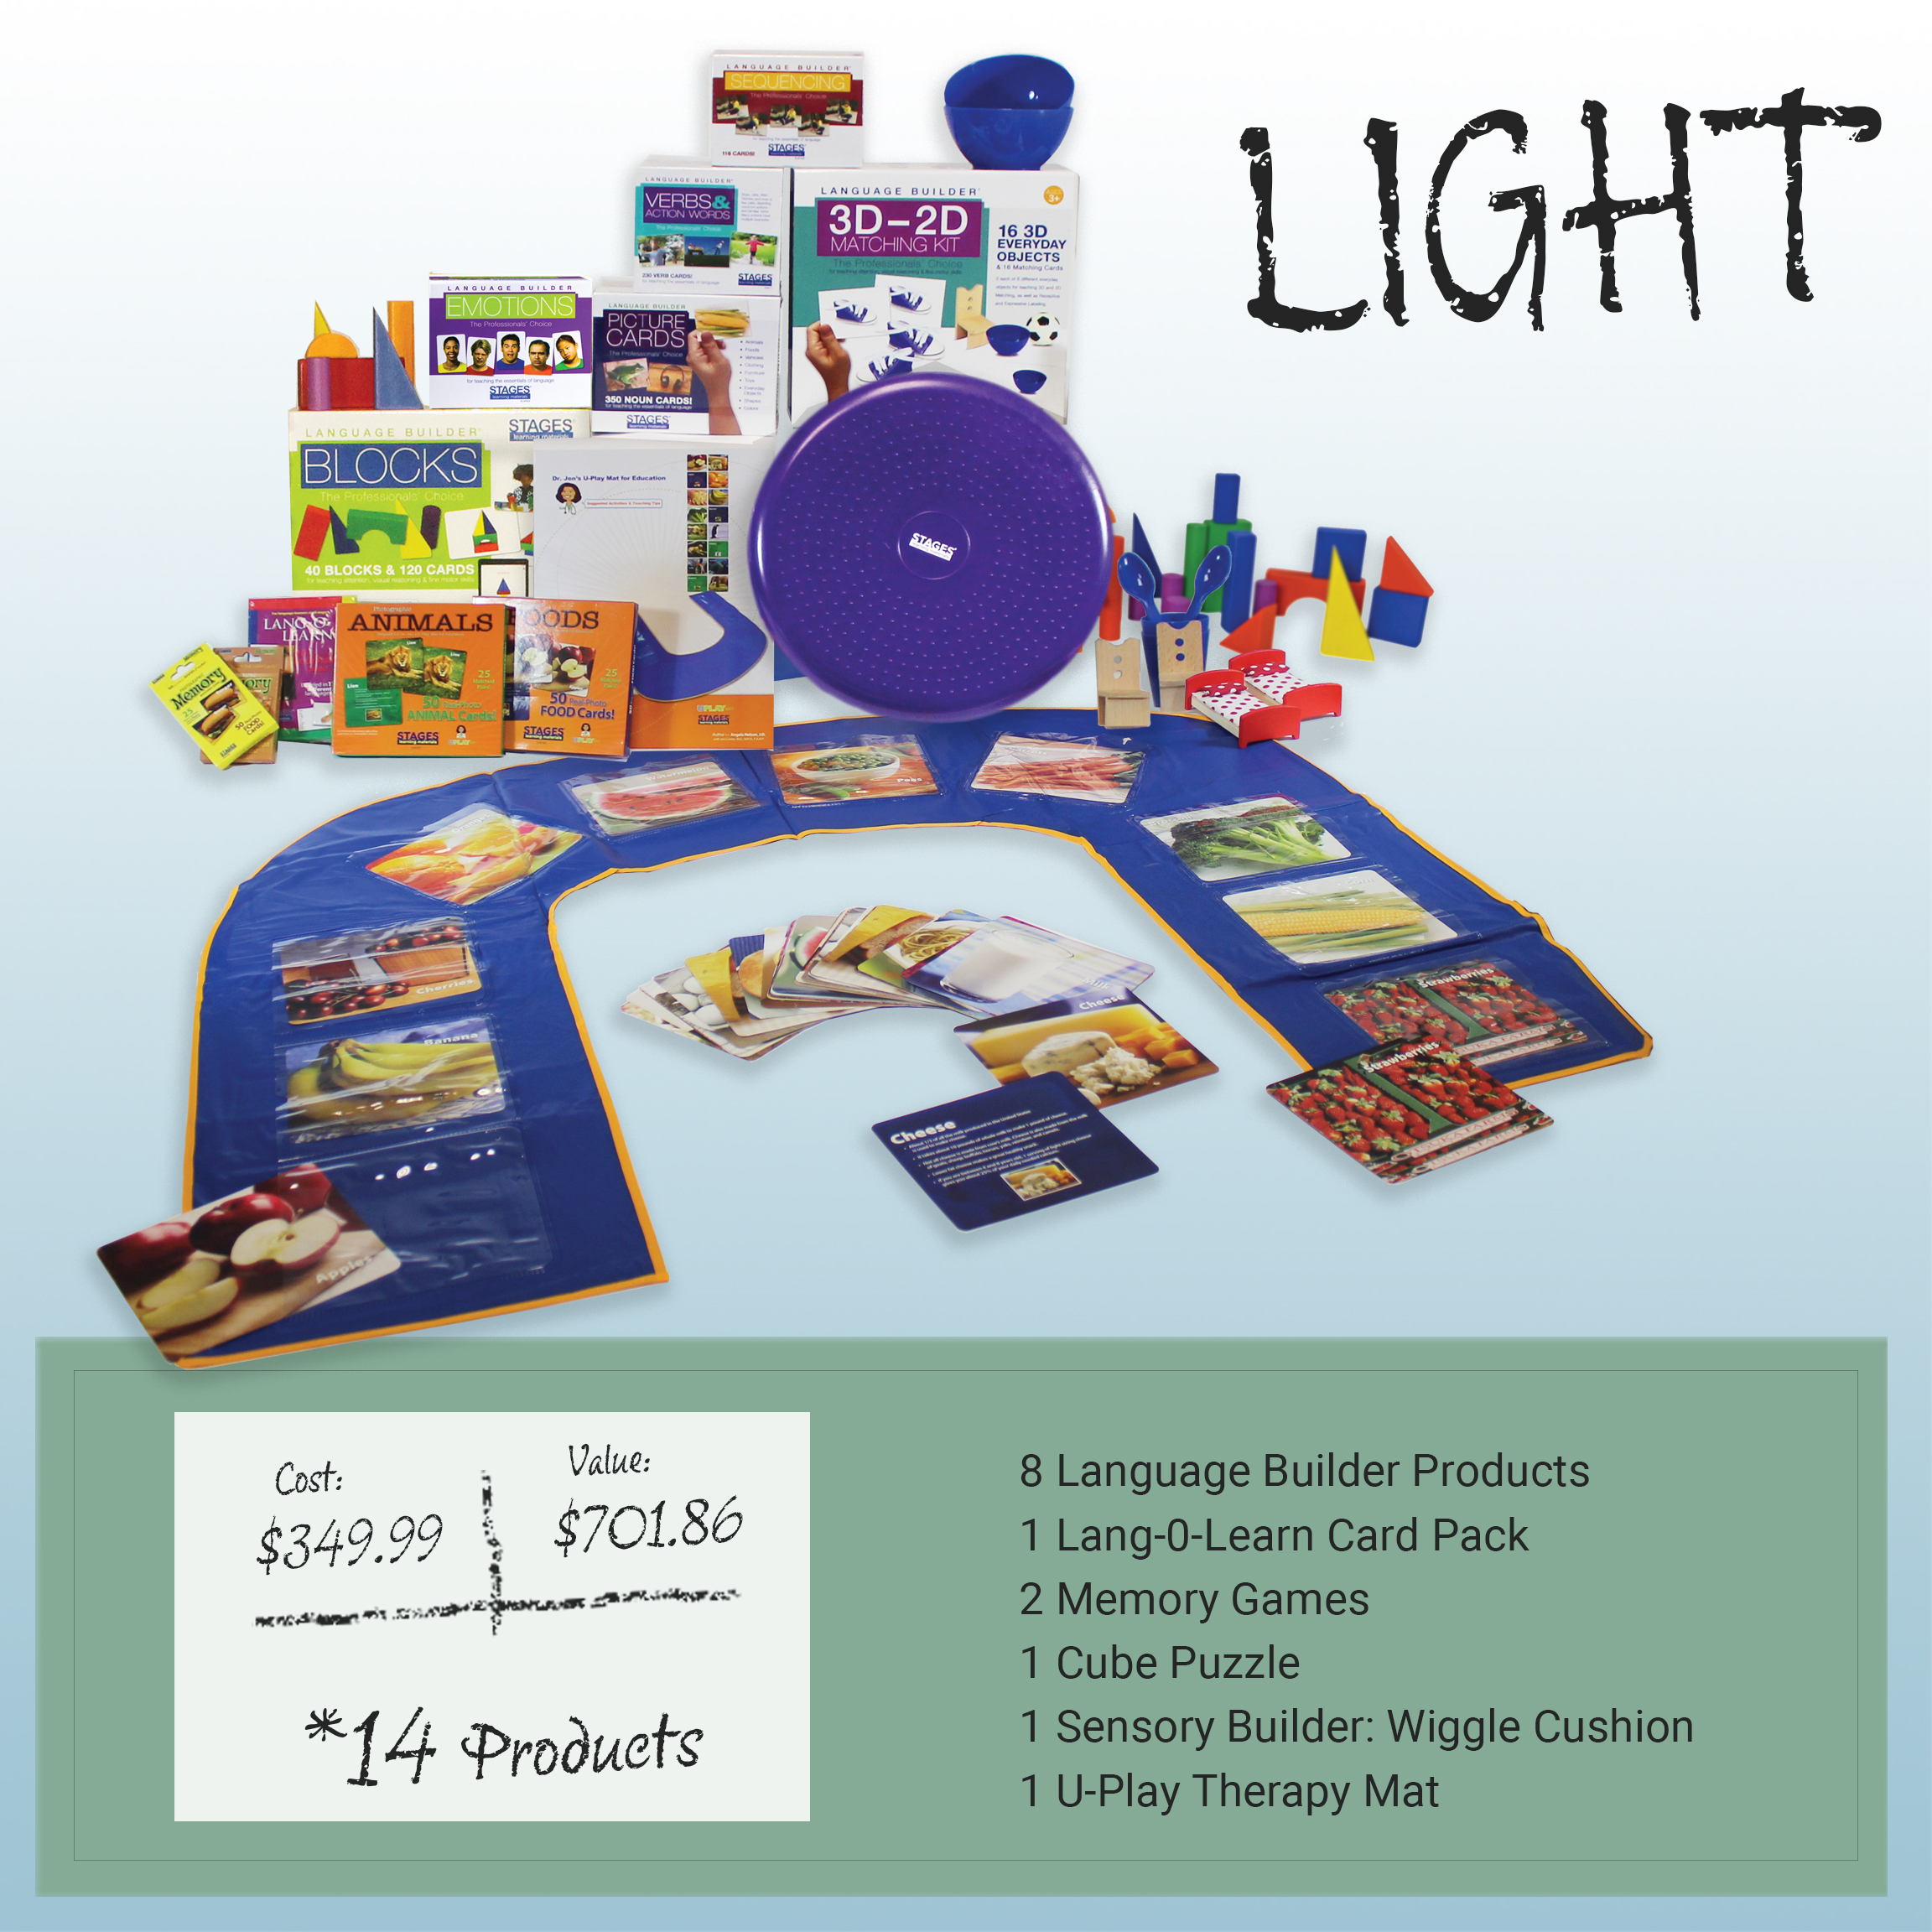 Post-it note with the price of the Light Kit. Value is $701.86. Cost is $349.99. Includes 14 products